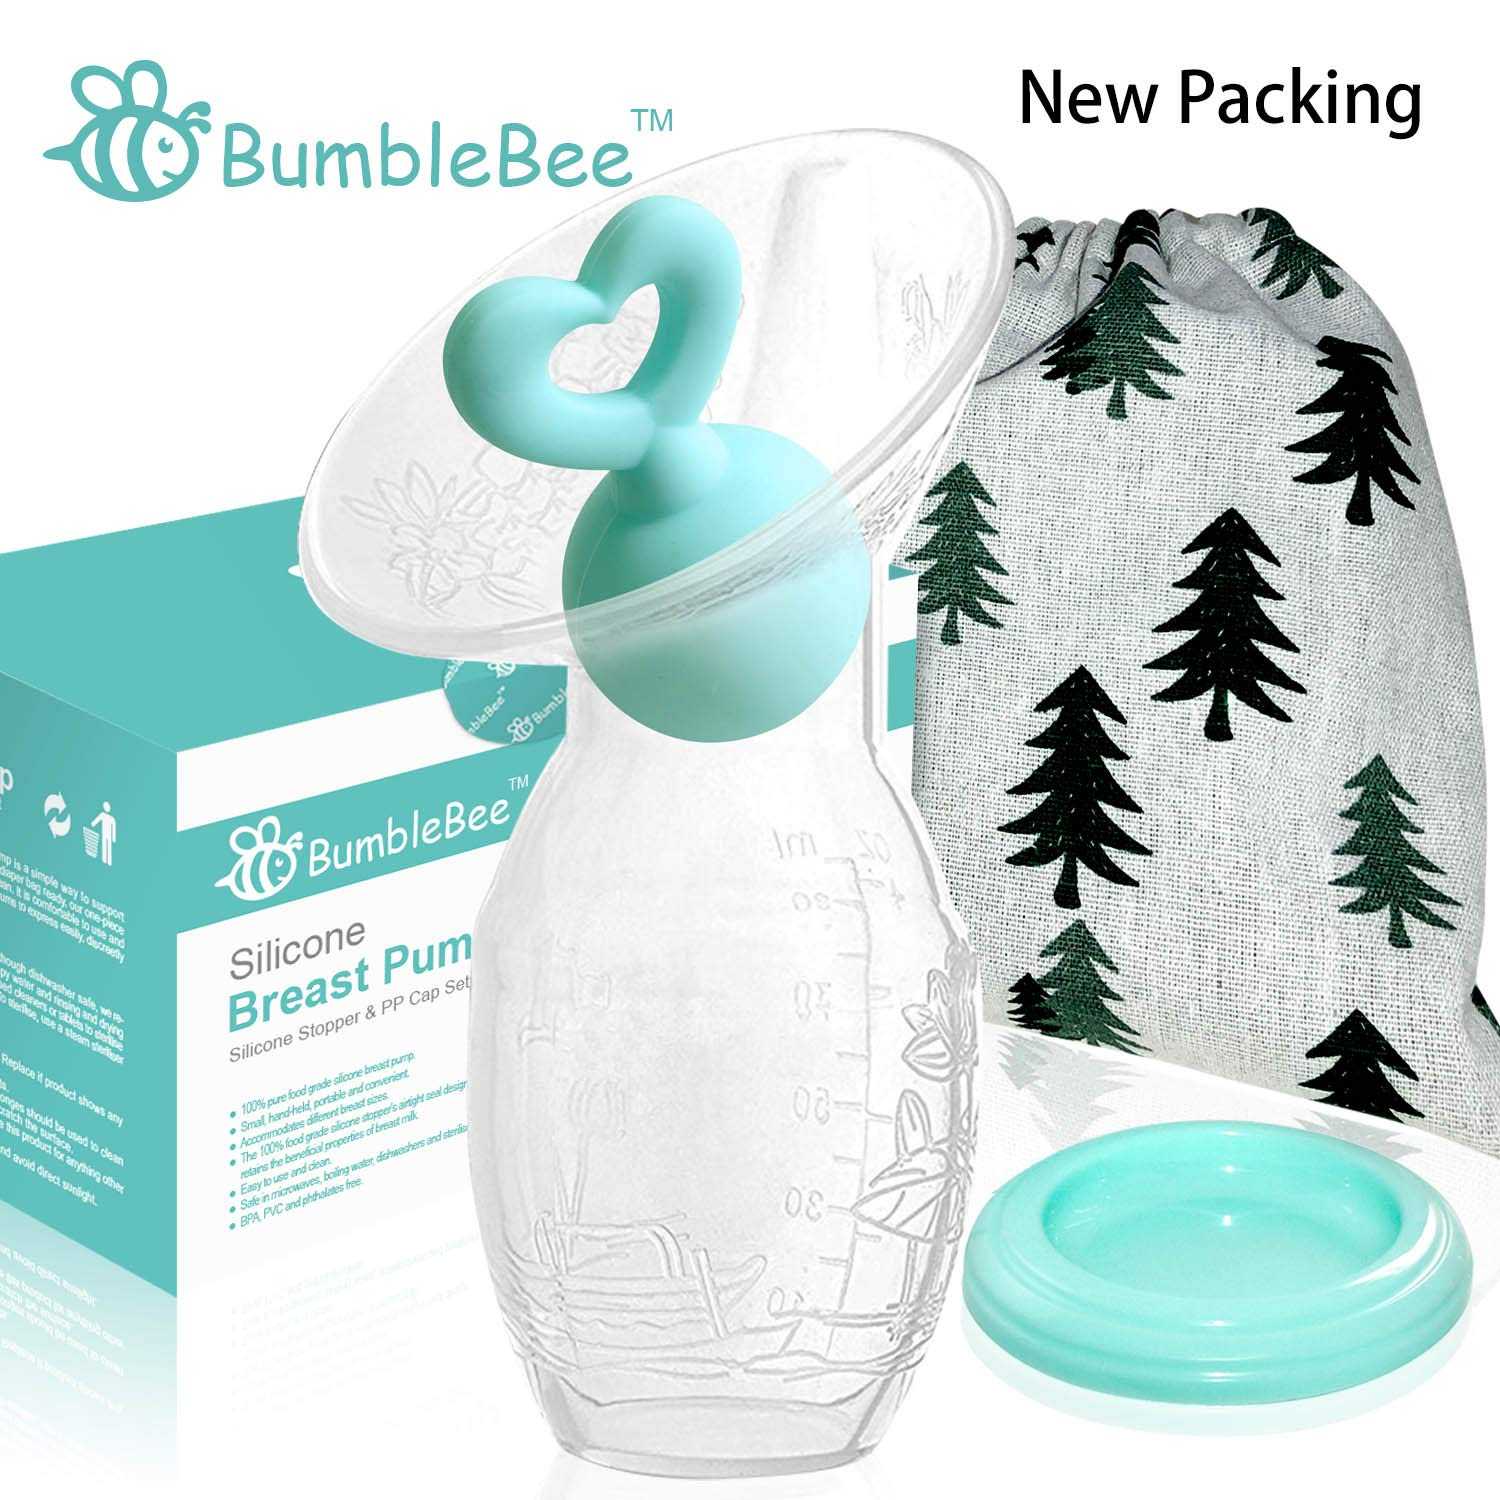 Bumblebee Manual Breast Pump with Breastfeeding Milk Saver Stopper& lid in Gift Box Similar haakaa Breastpump 100% Food Grade Silicone bpa PVC and Phthalate Free by Bumblebee